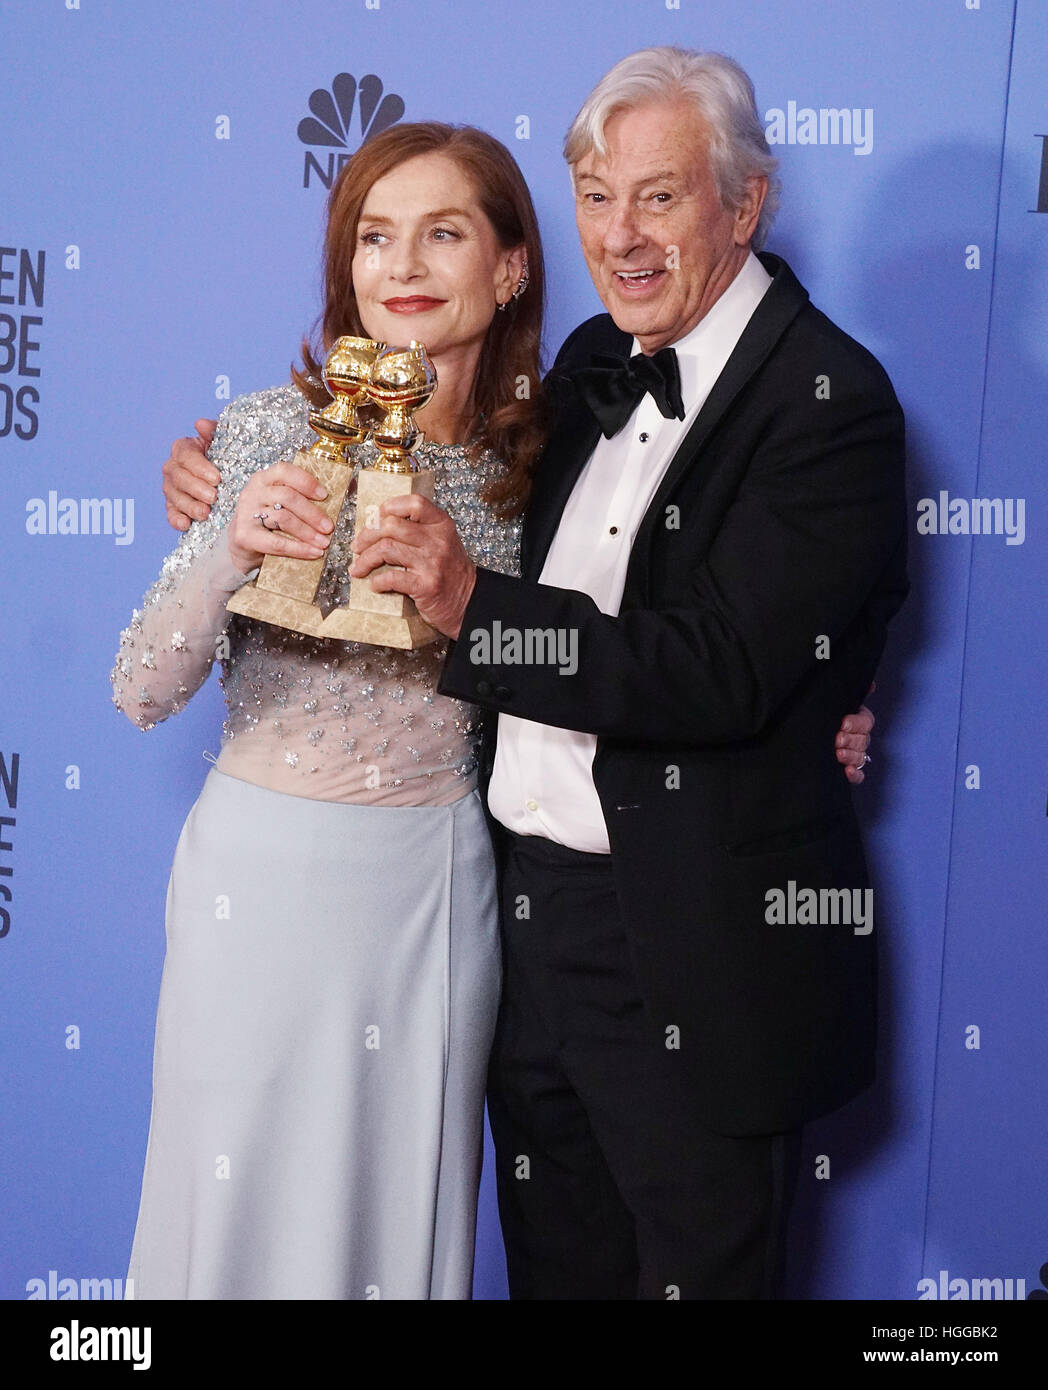 Los Angeles, Stati Uniti d'America. 08 gen 2017. Isabelle Huppert, Paul Verhoeven 332 Press room presso la 74Annuale Immagini Stock